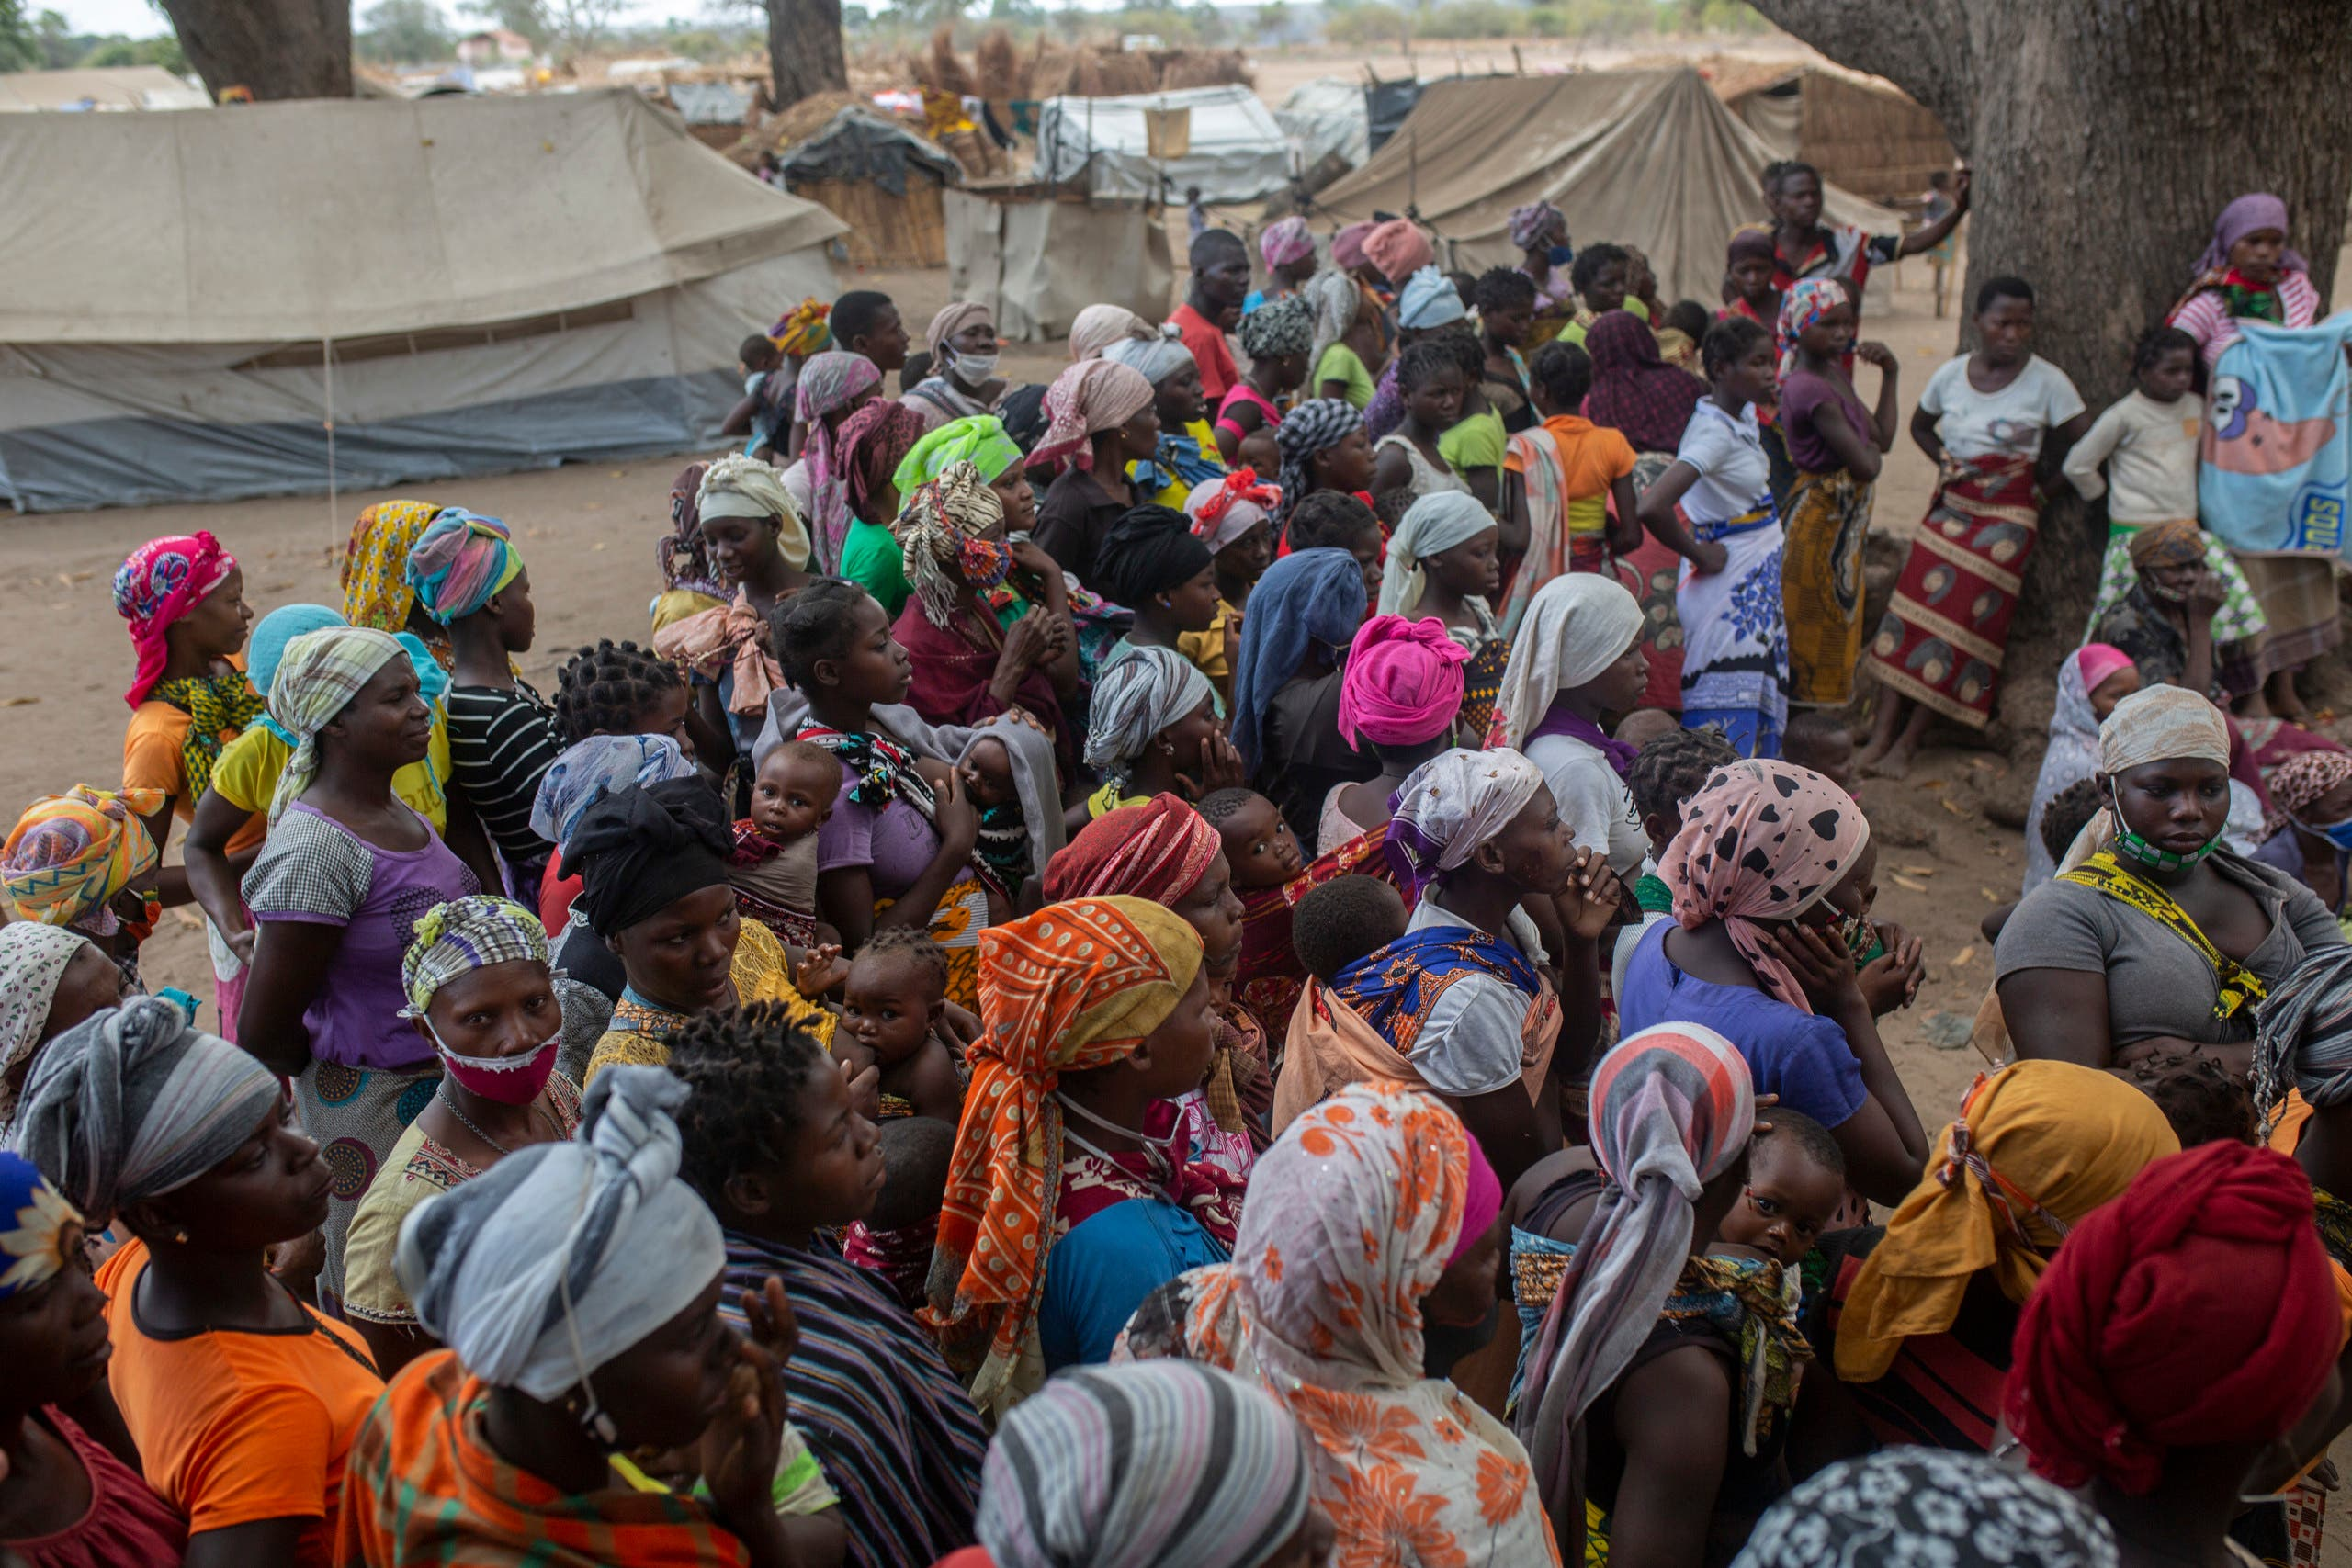 Displaced women meet on December 11, 2020 at the Centro Agrario de Napala where hundreds of displaced arrived in recent months are sheltered, fleeing attacks by armed insurgents in different areas of the province of Cabo Delgado, in northern Mozambique. (Alfredo Zuniga/AFP)